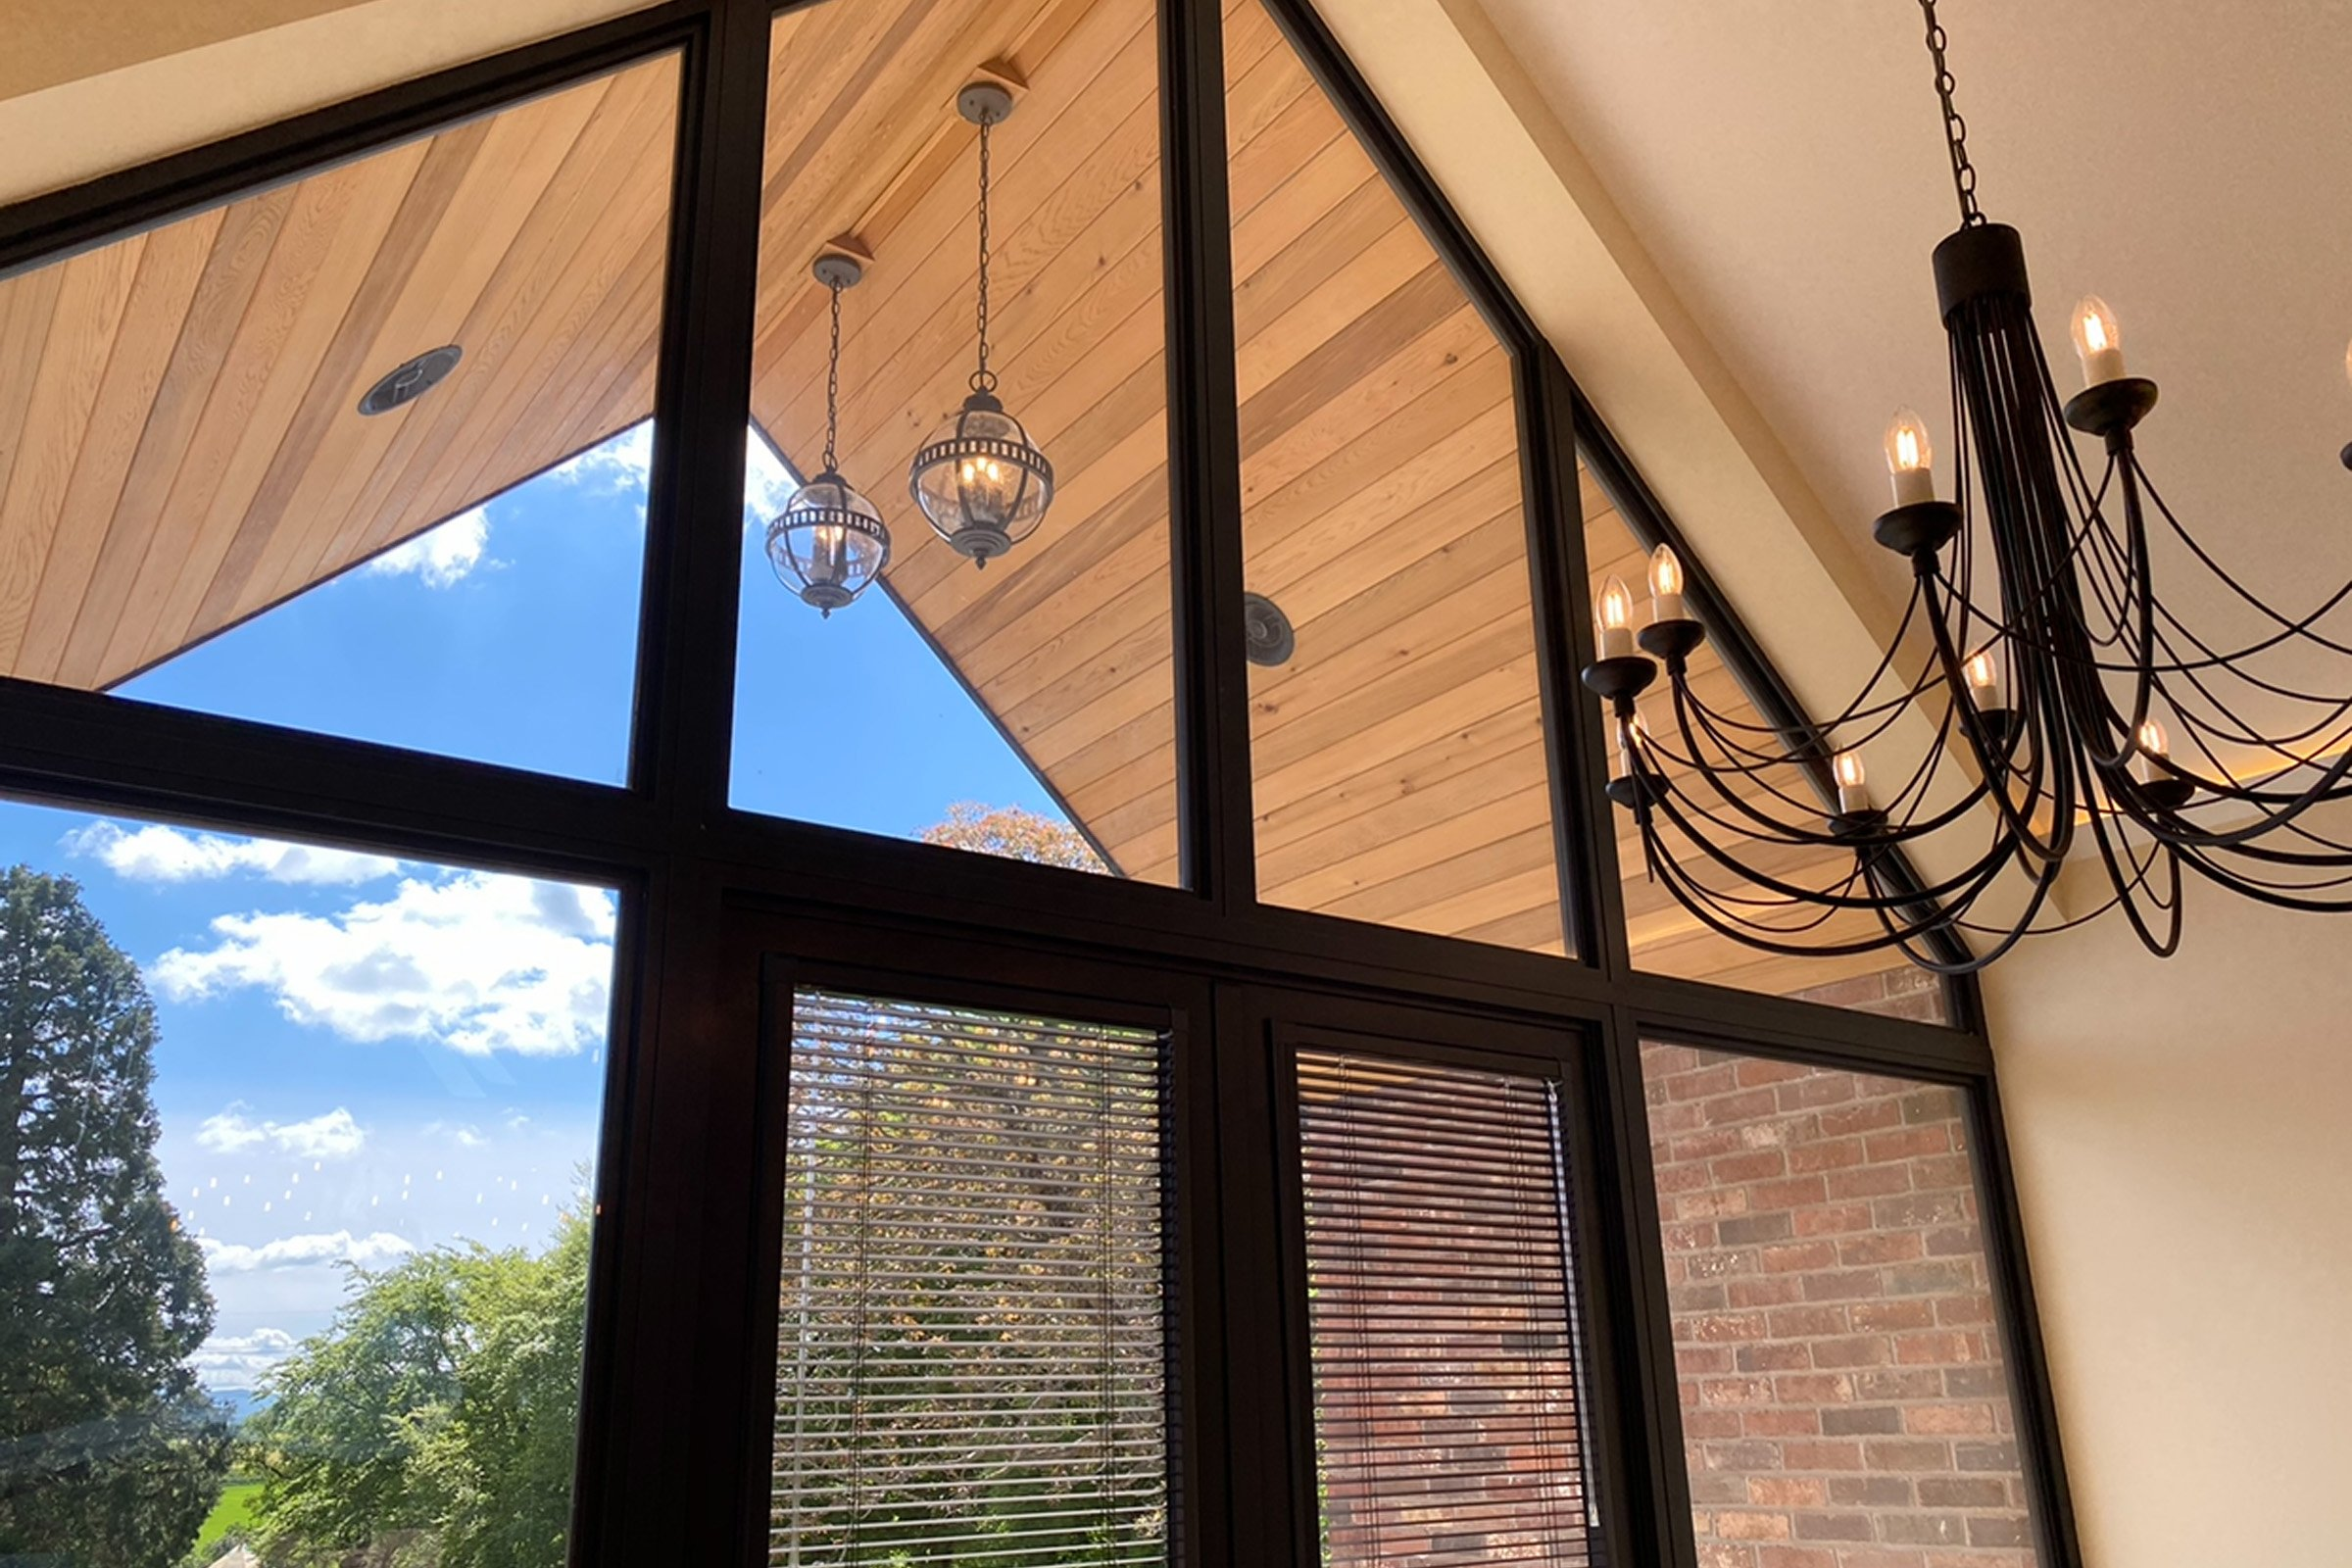 Balcony featuring Sonance in-ceiling speakers